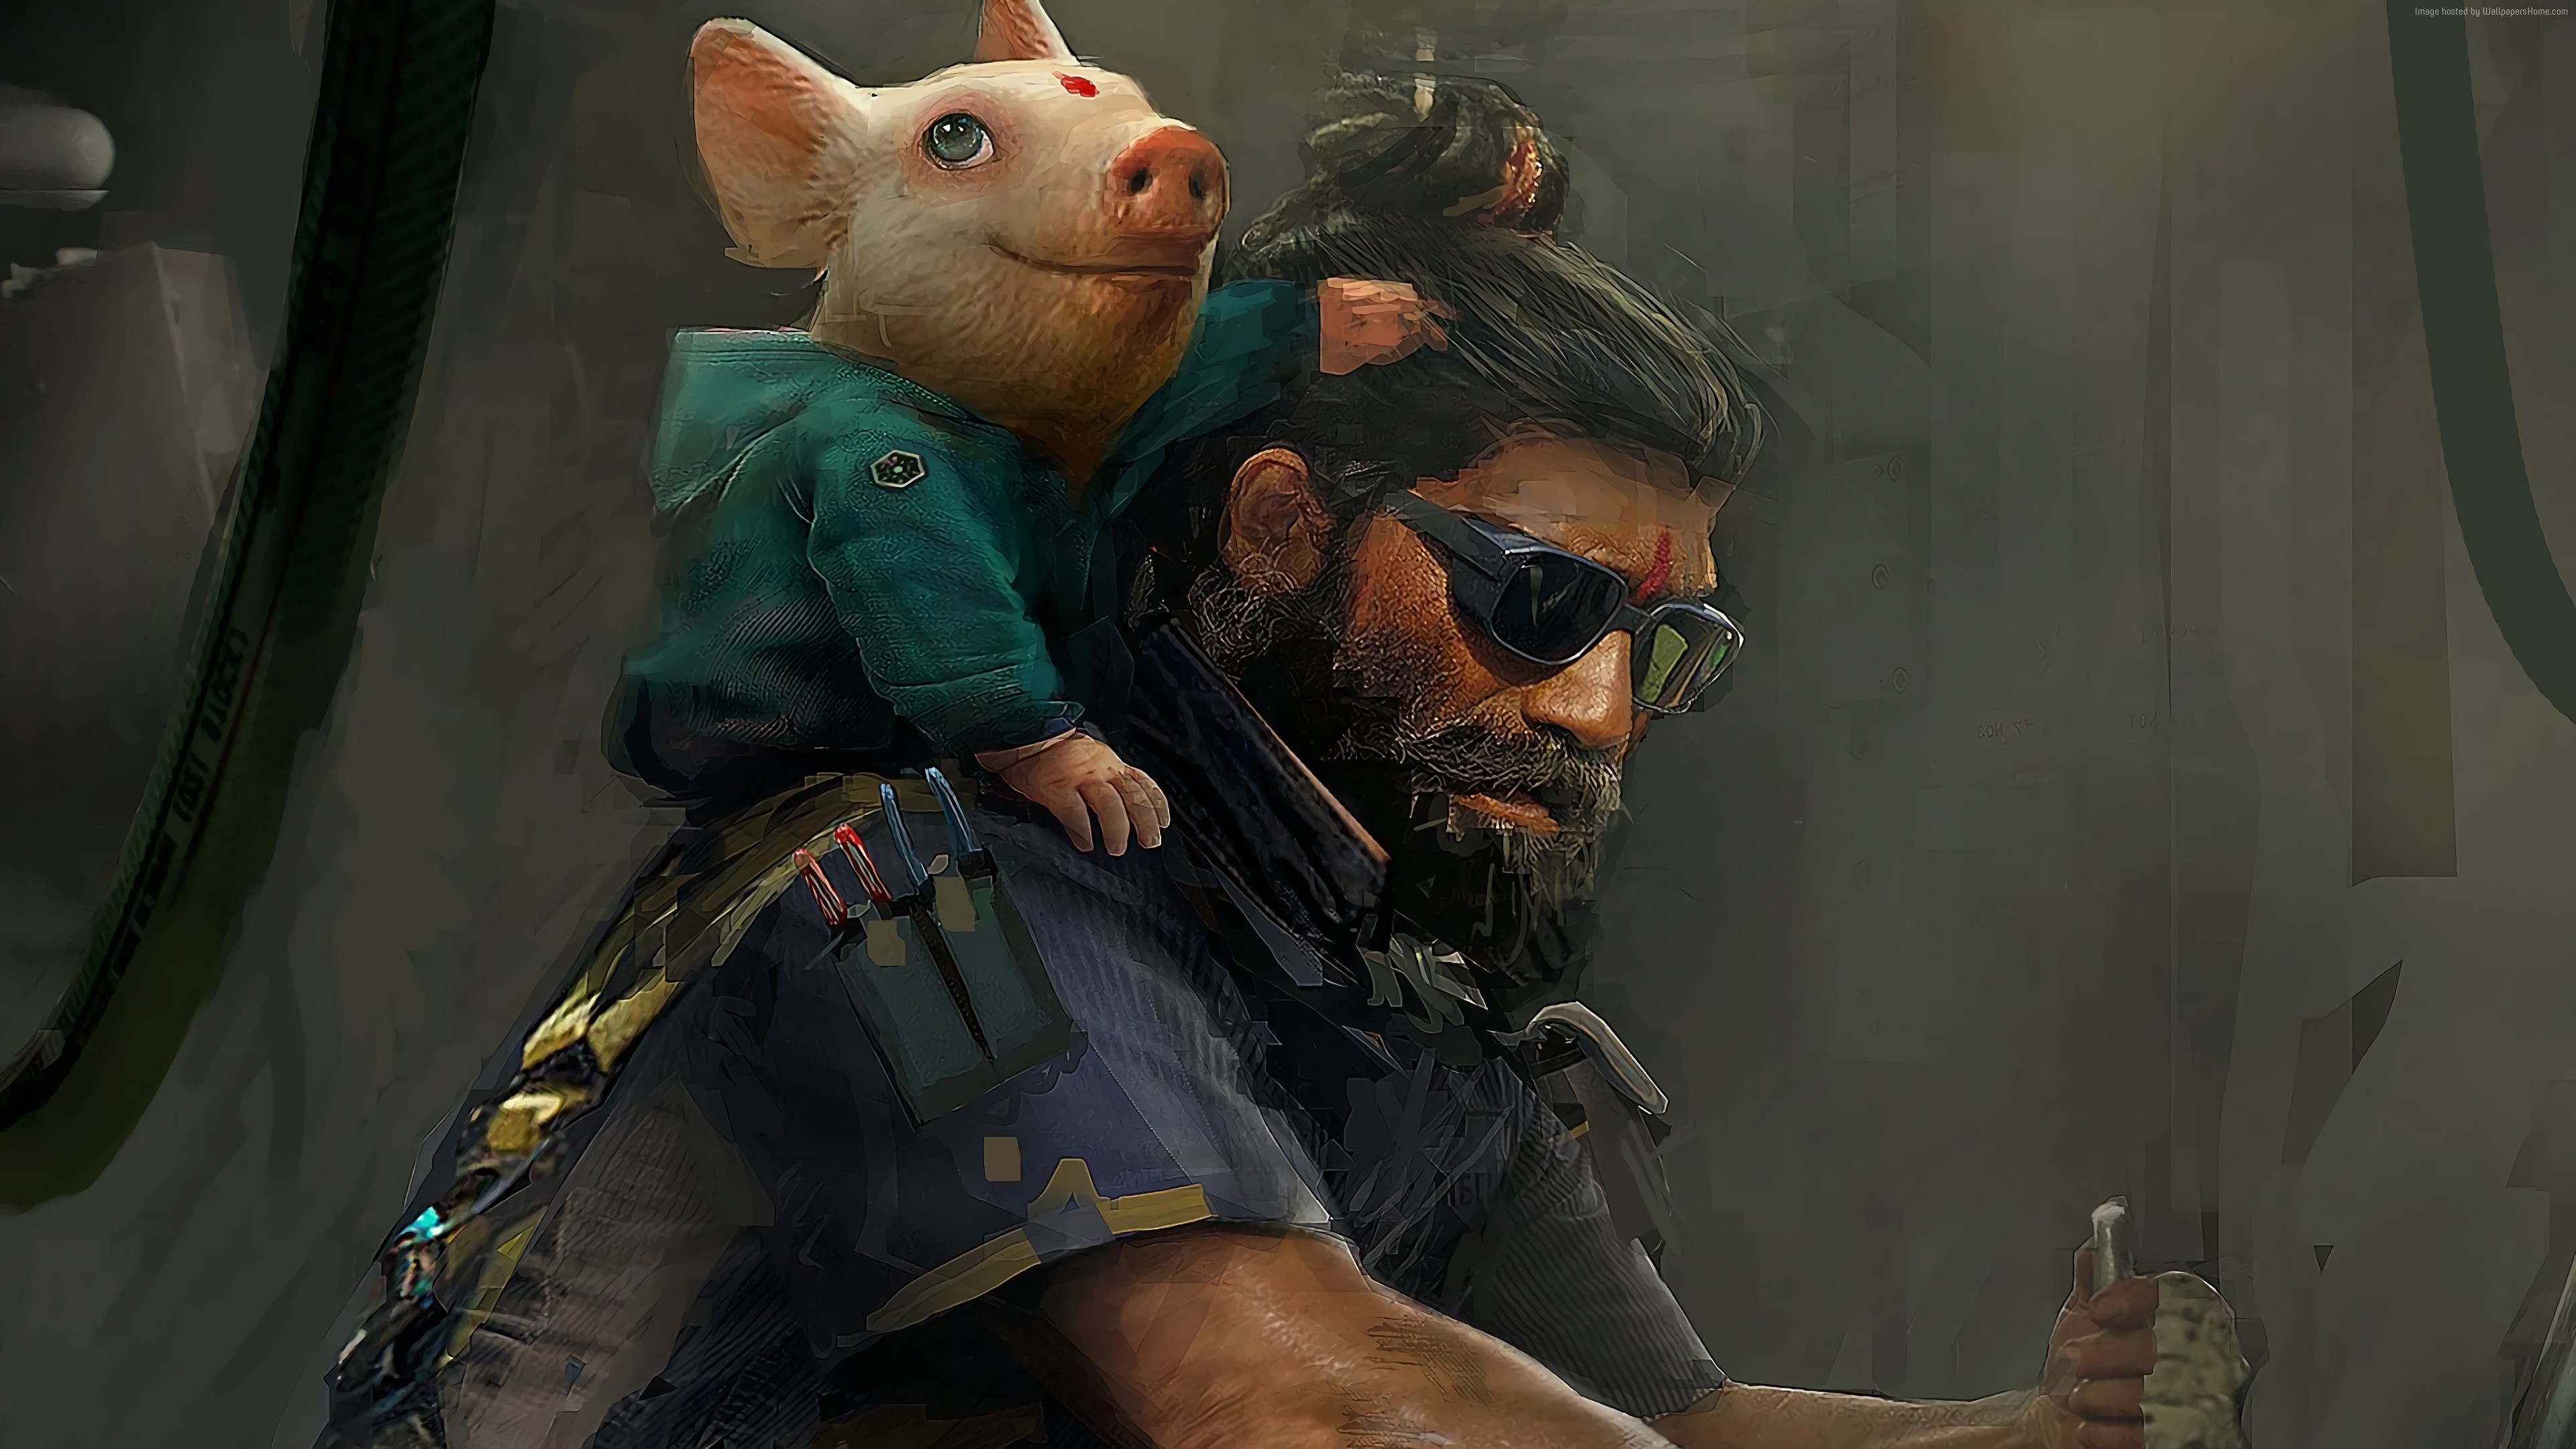 Wallpaper Beyond Good and Evil 2, E3 2018, artwork, poster, 4K, Games